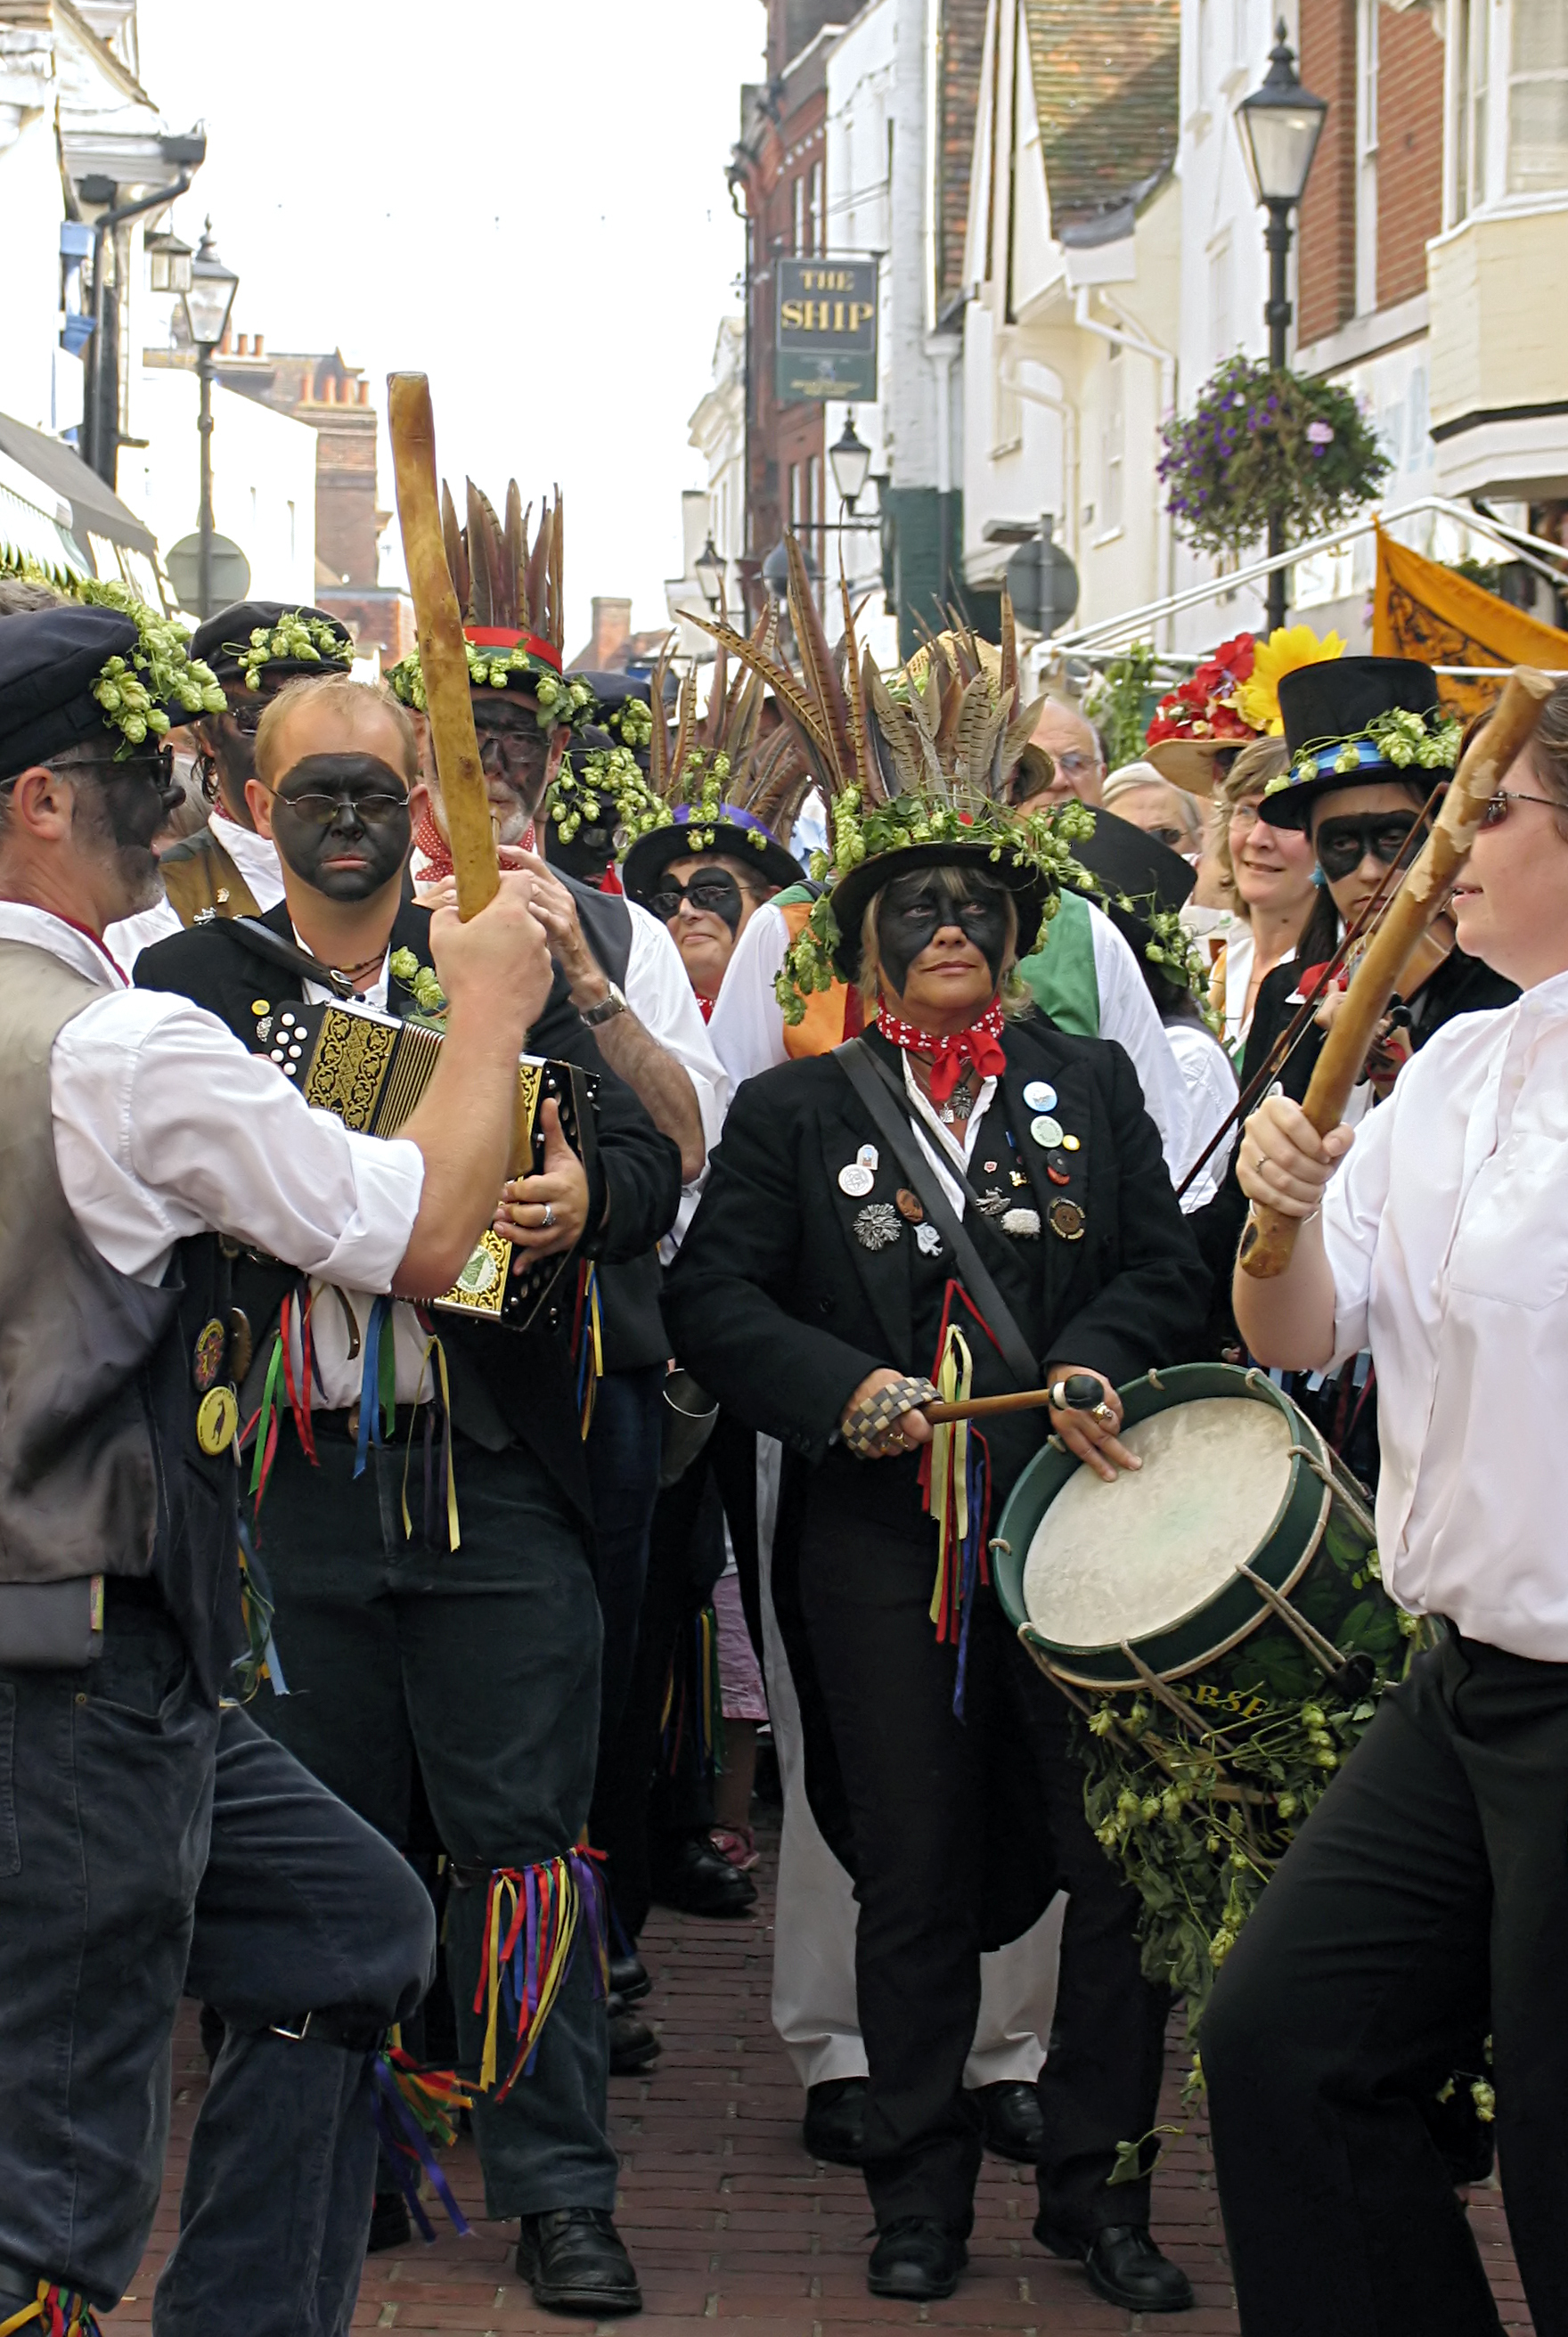 Black-face- morris-dancing.jpg